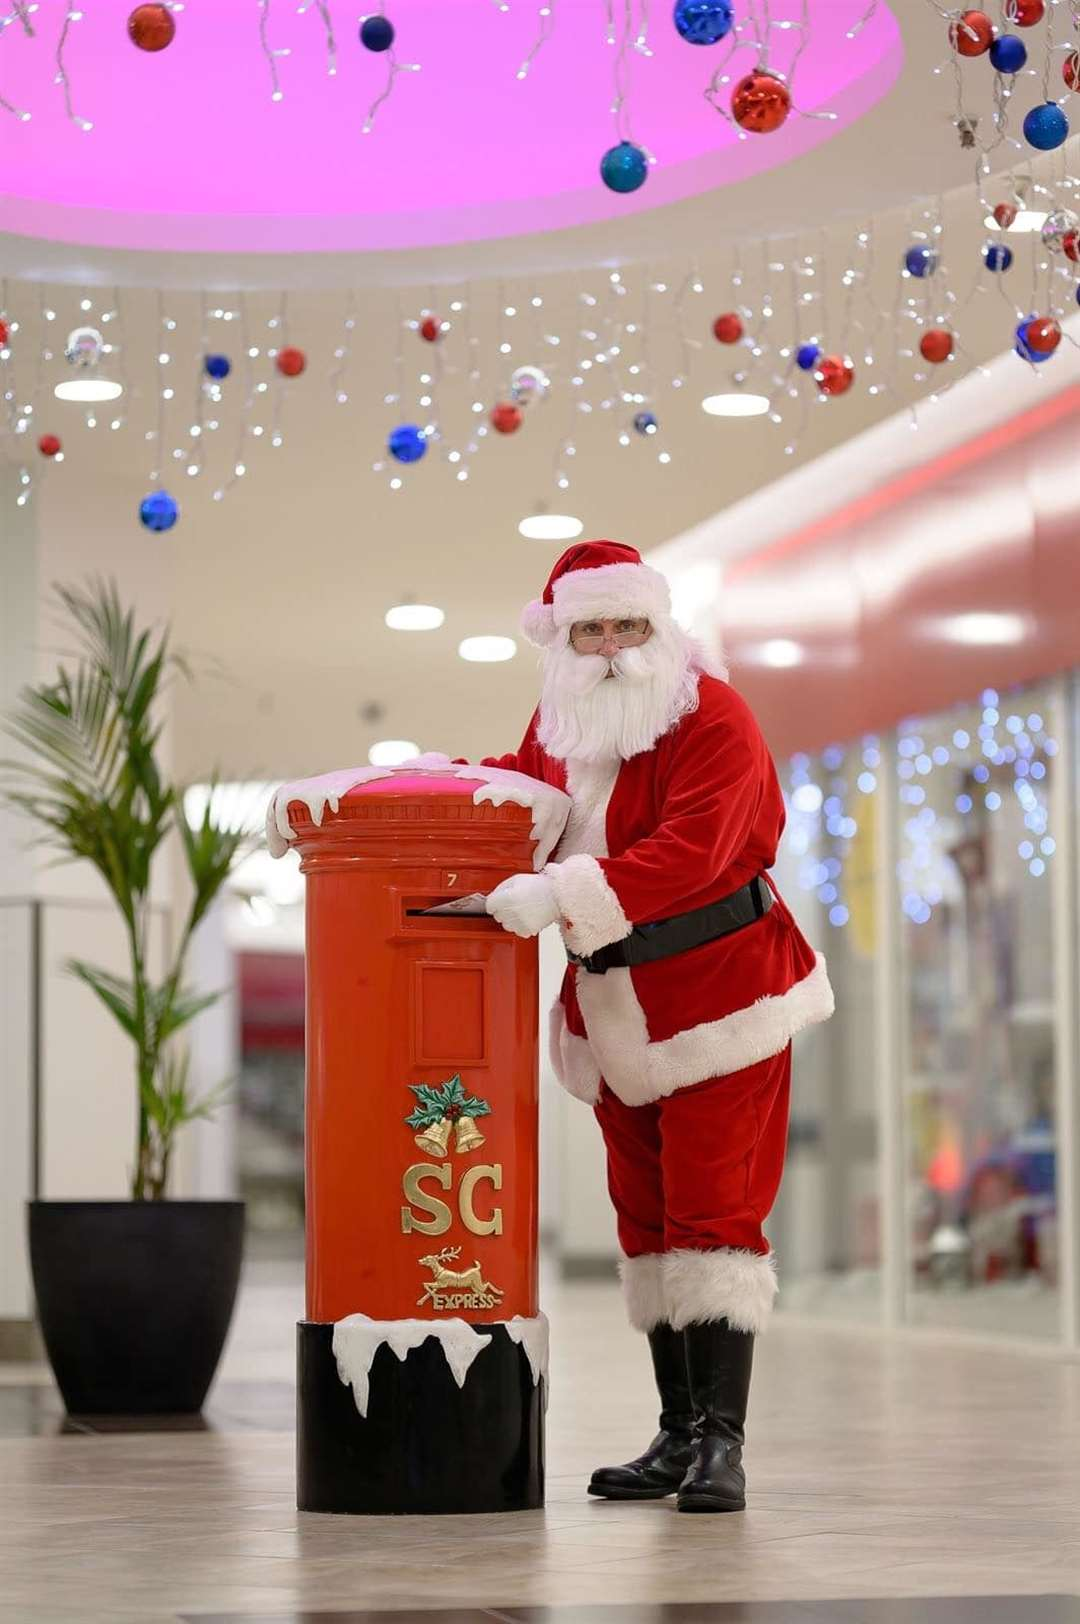 Home Instead Senior Care East Herts and Uttlesford's 'Be a Santa To a Senior' scheme comes to Jackson Square from December 1